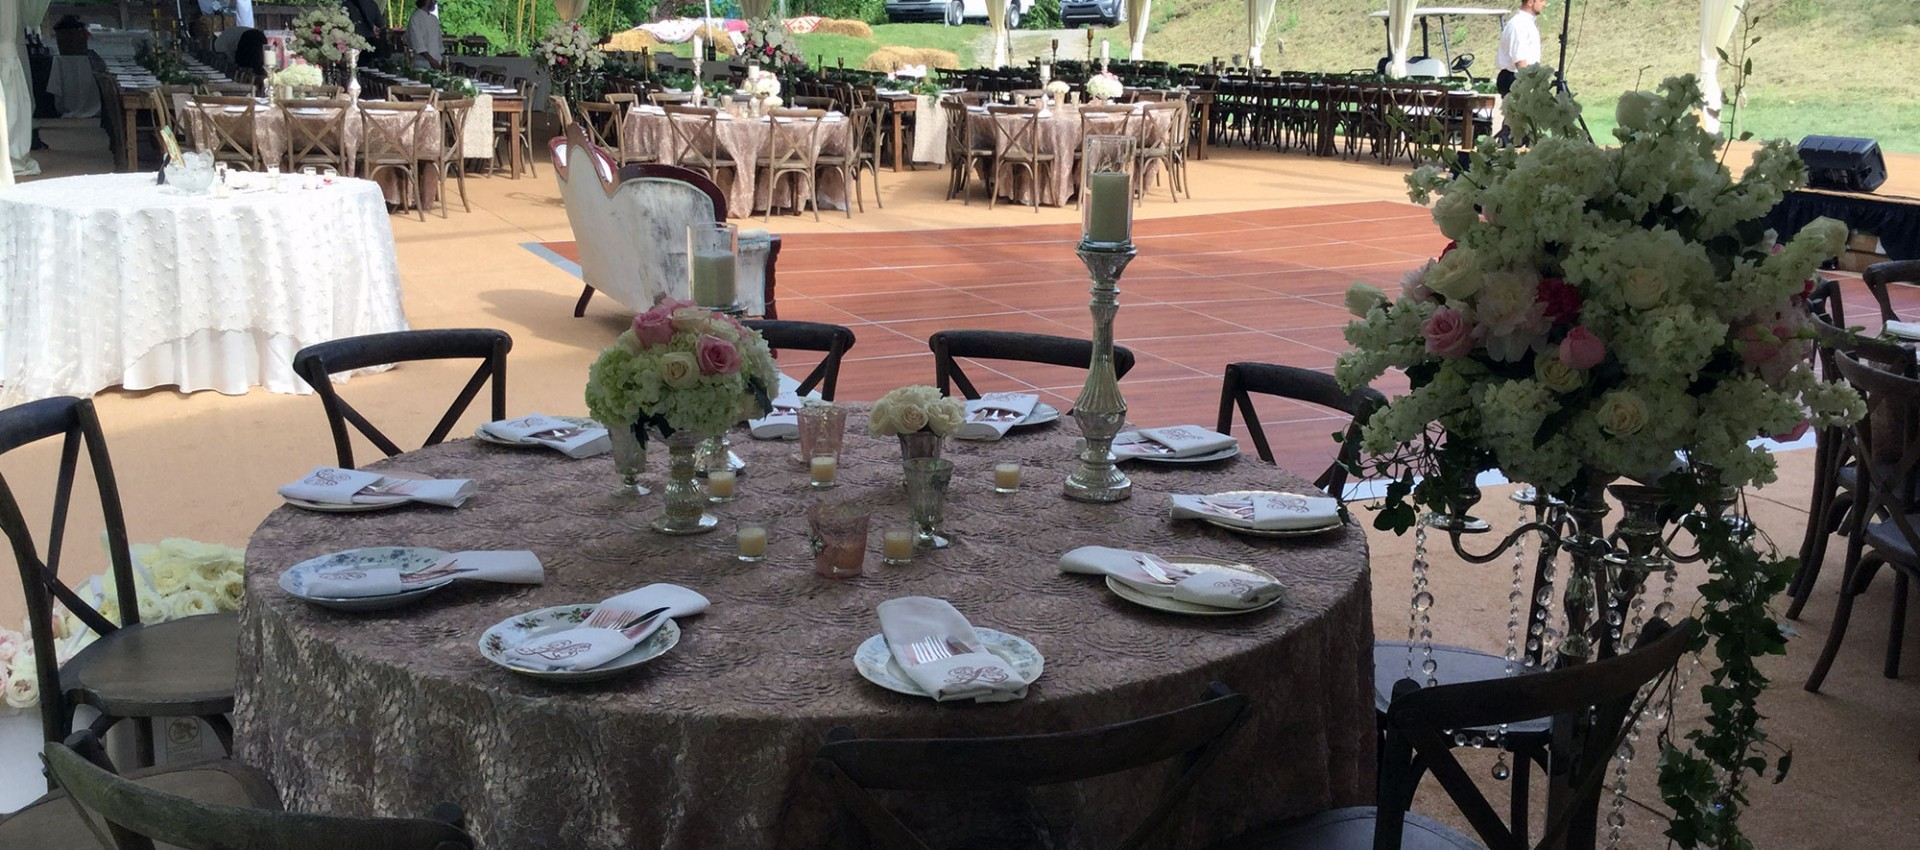 chair cover rentals halifax upholstered toddler equipment party tent wedding table tops cutlery and candles for rent